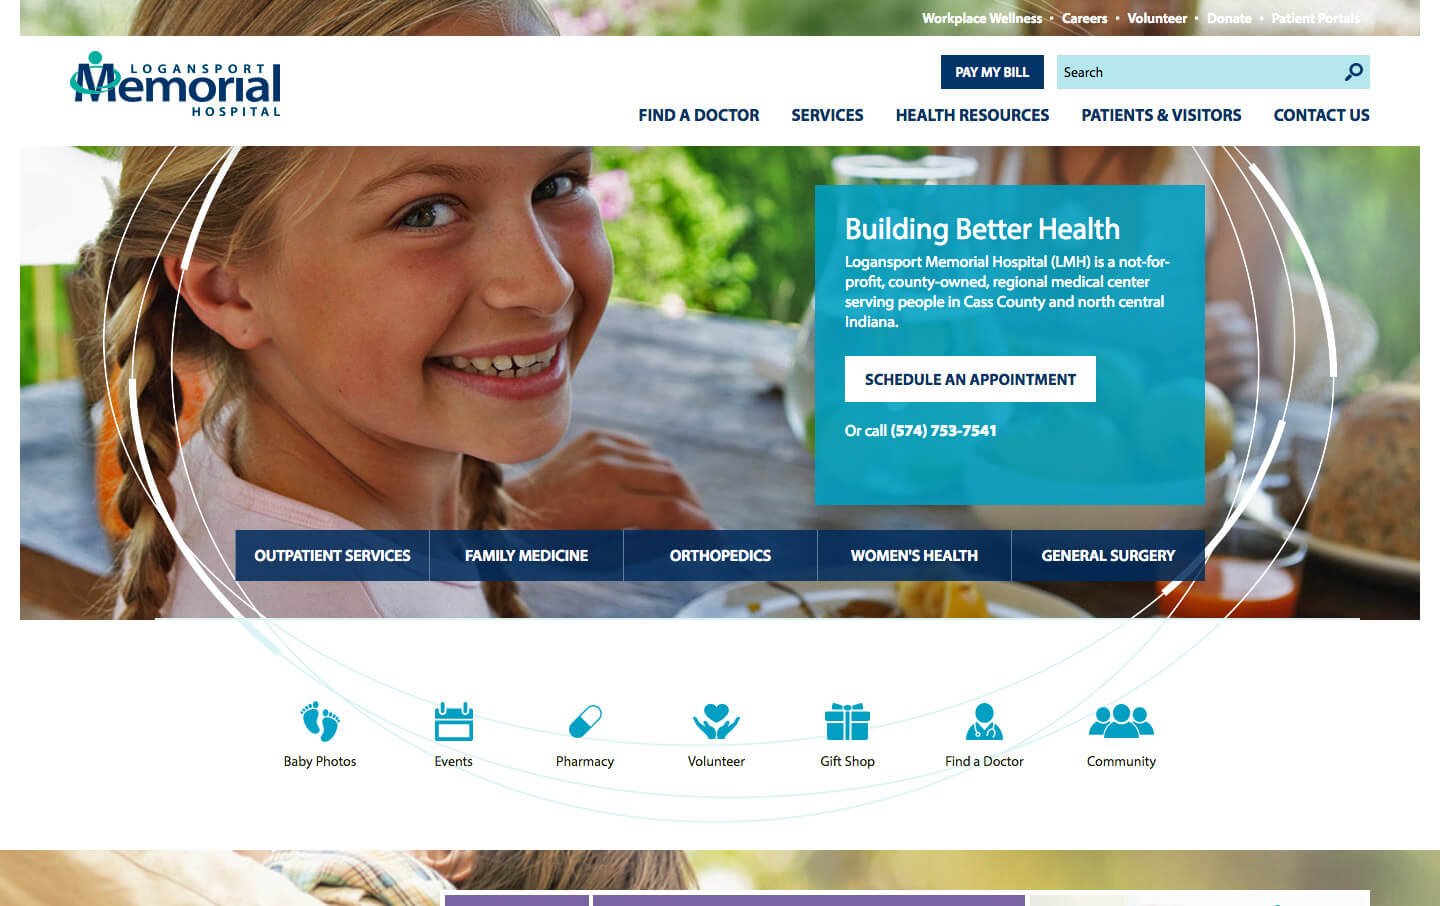 Logansport Memorial Hospital website preview